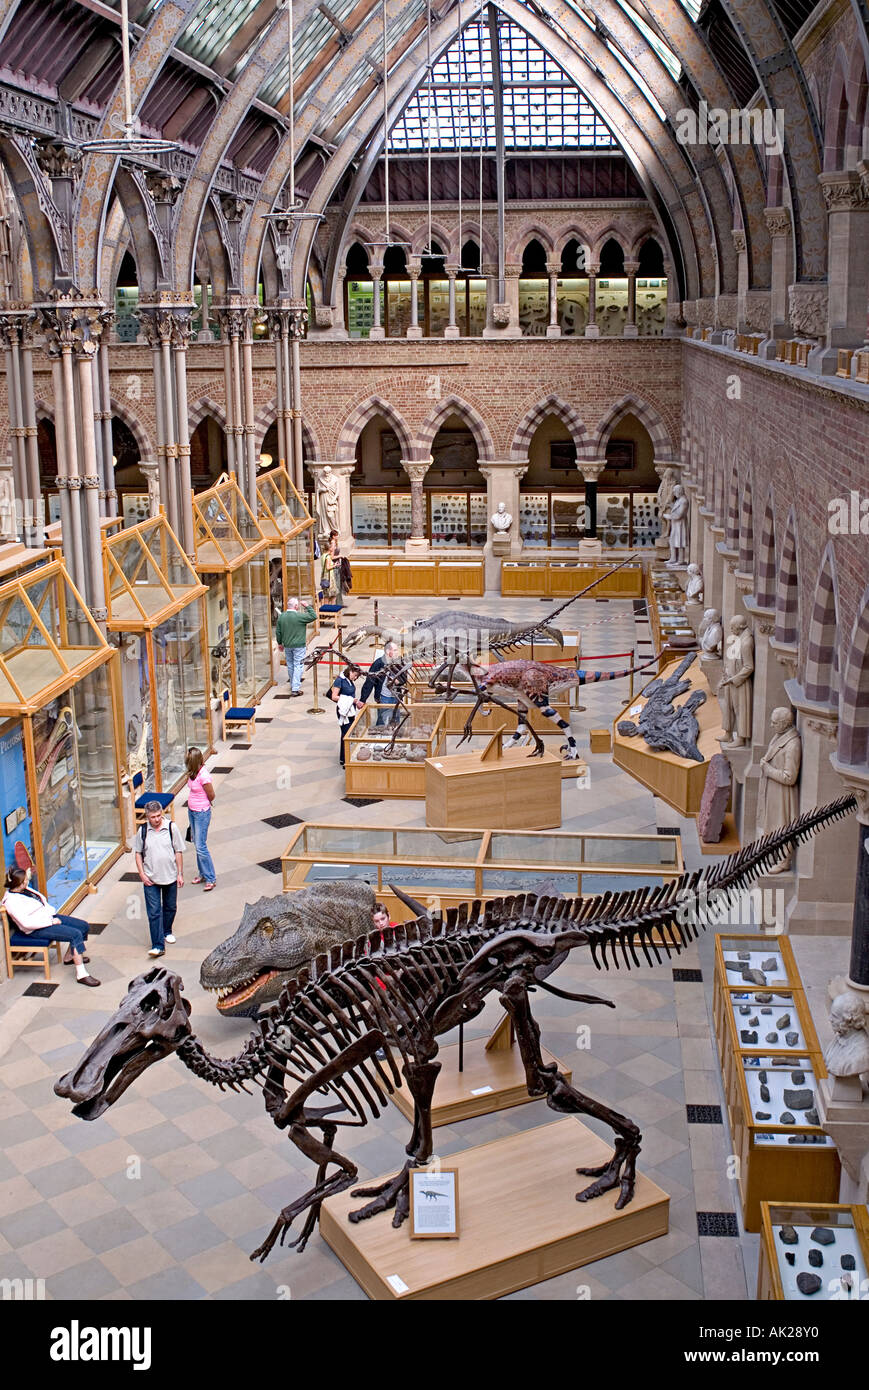 Interior of the University Natural History Museum in Oxford England - Stock Image